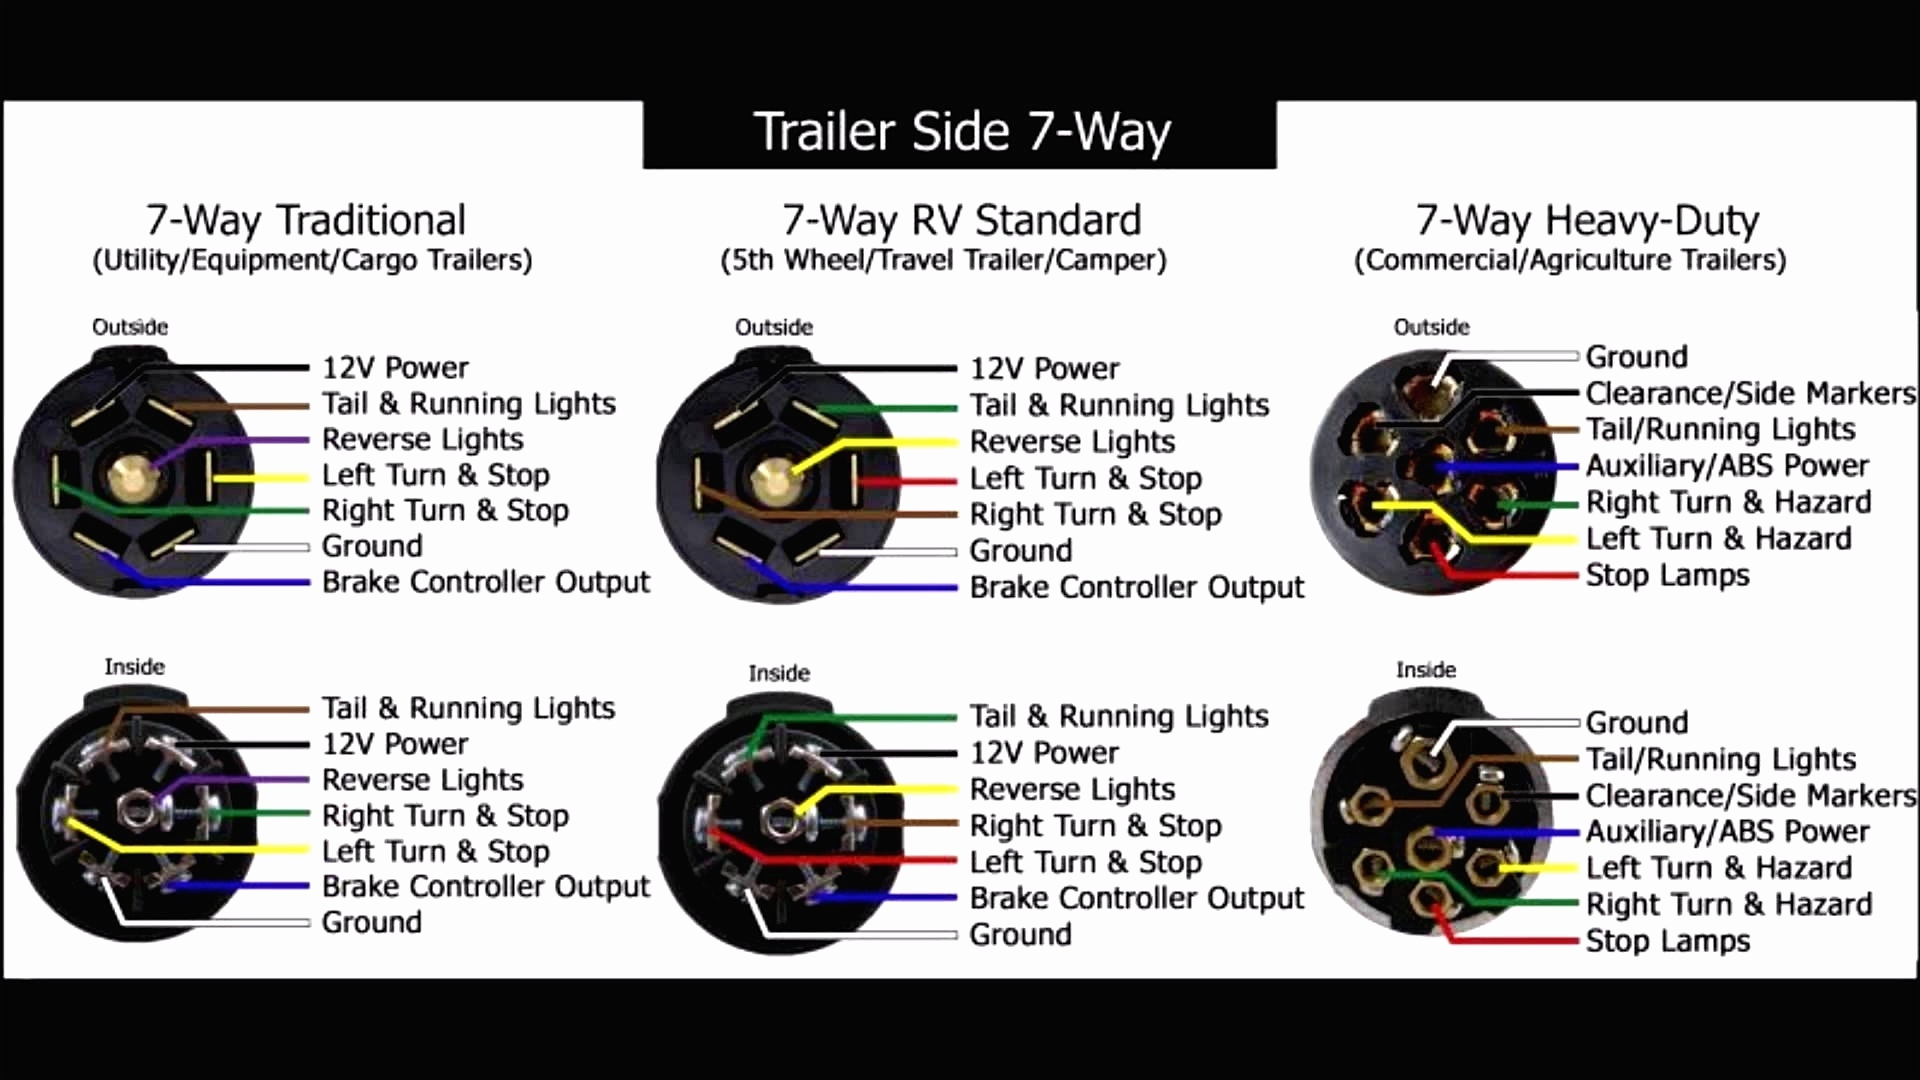 Wells Cargo Trailer Wiring Diagram | Wiring Diagram - Utility Trailer Wiring Diagram With Brakes